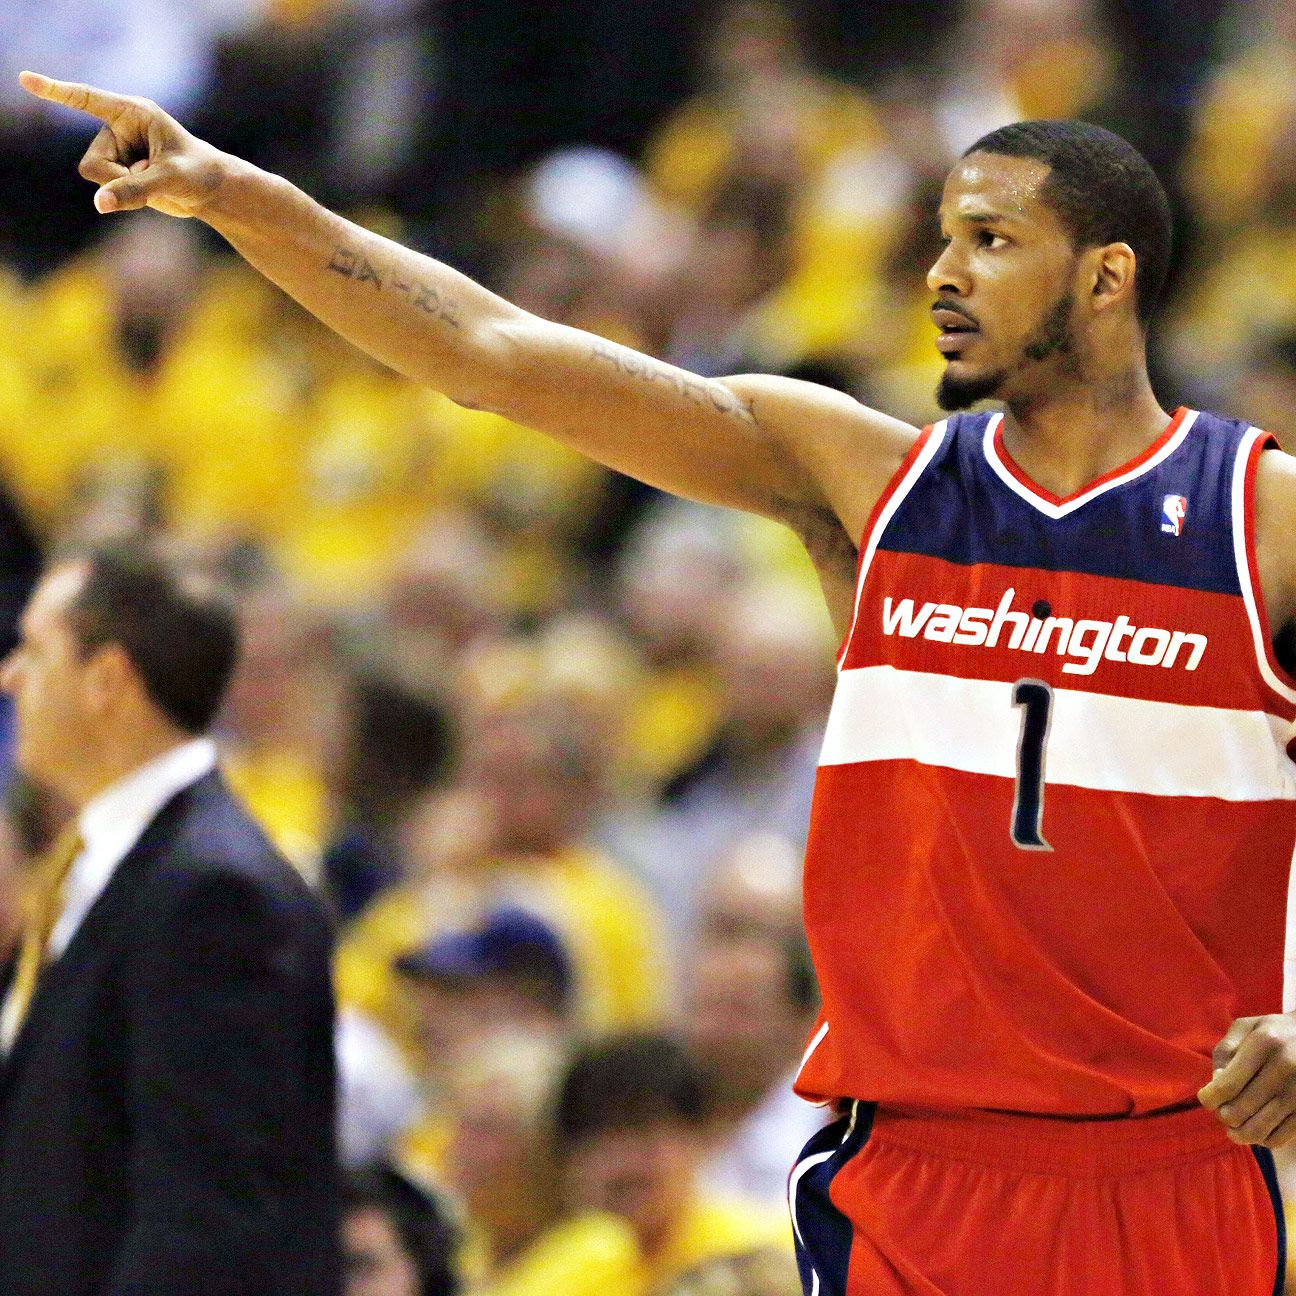 Houston Rockets Where To Watch The Upcoming Match Espn: Houston Rockets Will Sign Trevor Ariza